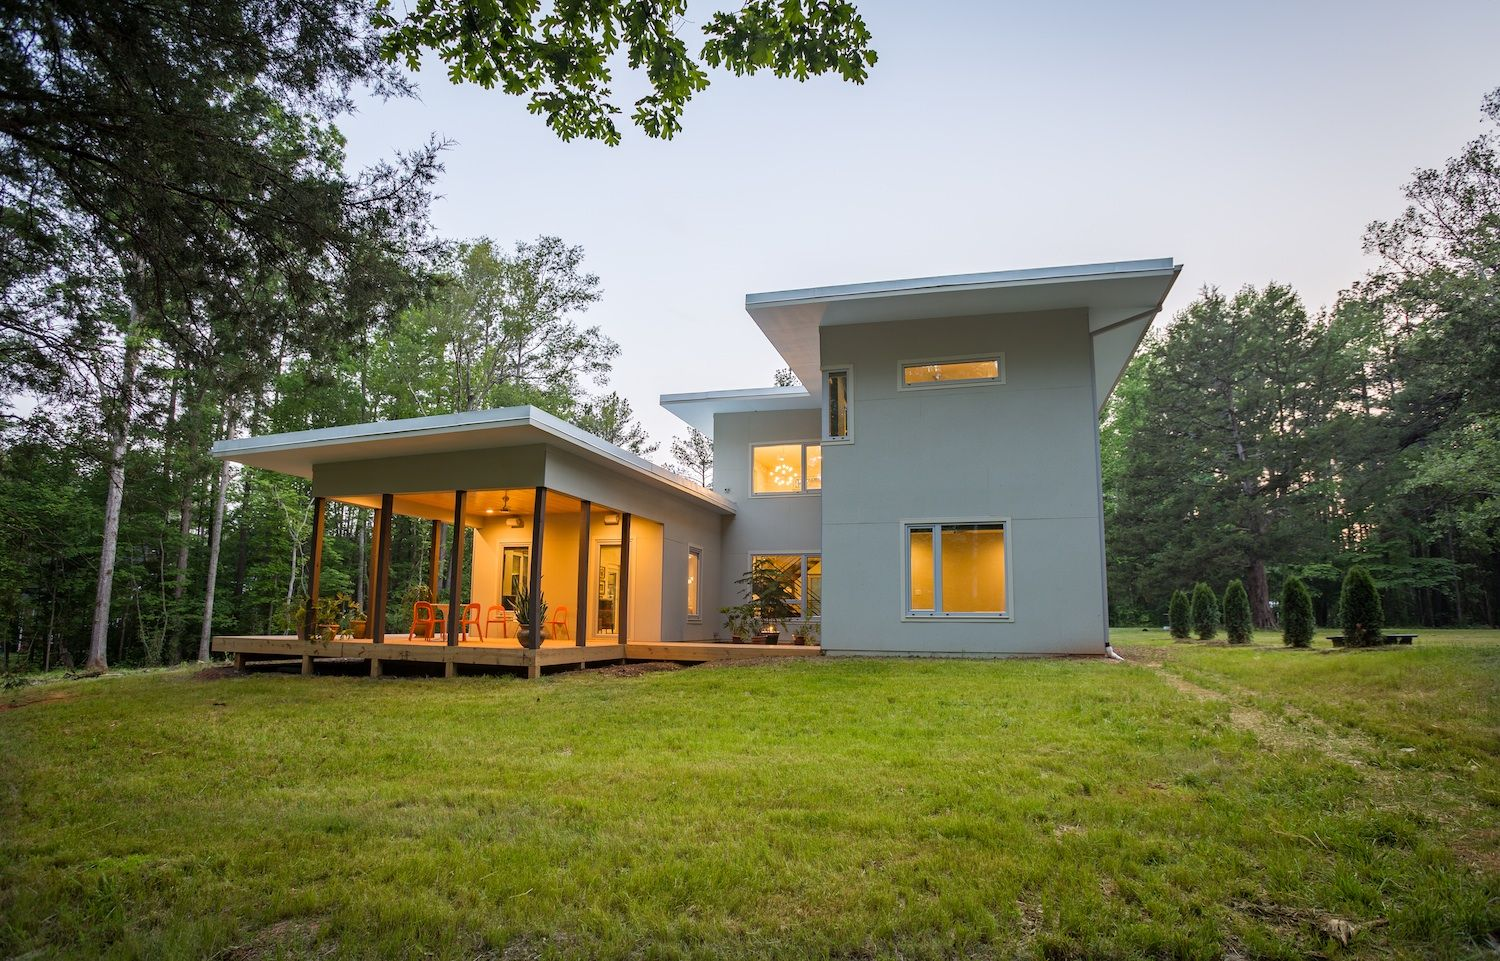 Net zero passive home in North Carolina can